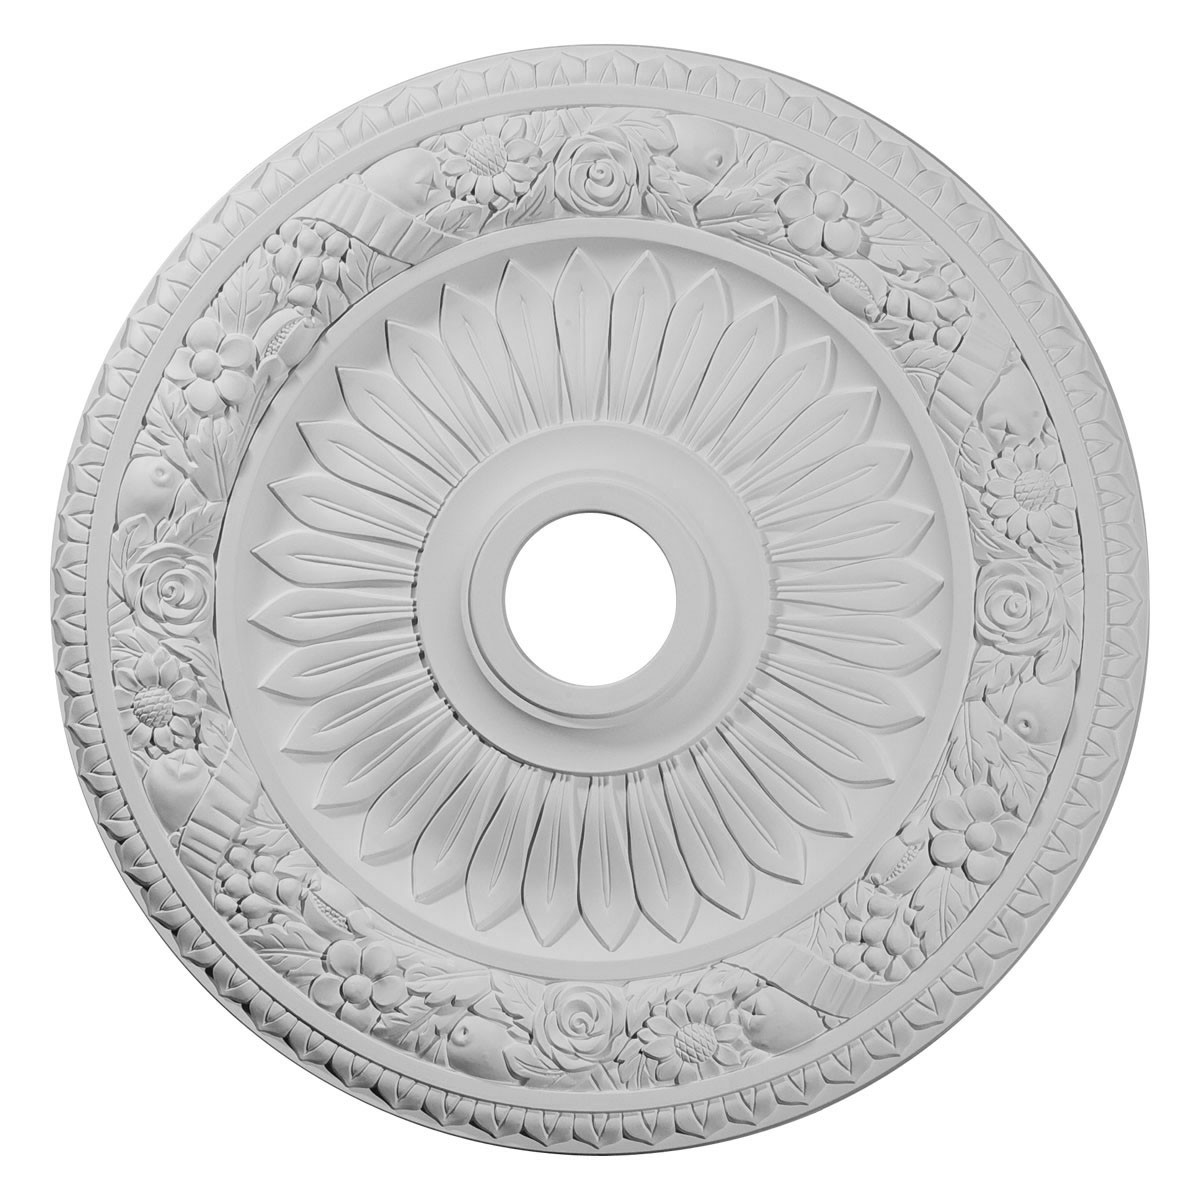 """EM-CM23BE - 23 5/8""""OD x 3 5/8""""ID x 1 1/8""""P Bellona Ceiling Medallion (Fits Canopies up to 3 5/8"""")"""